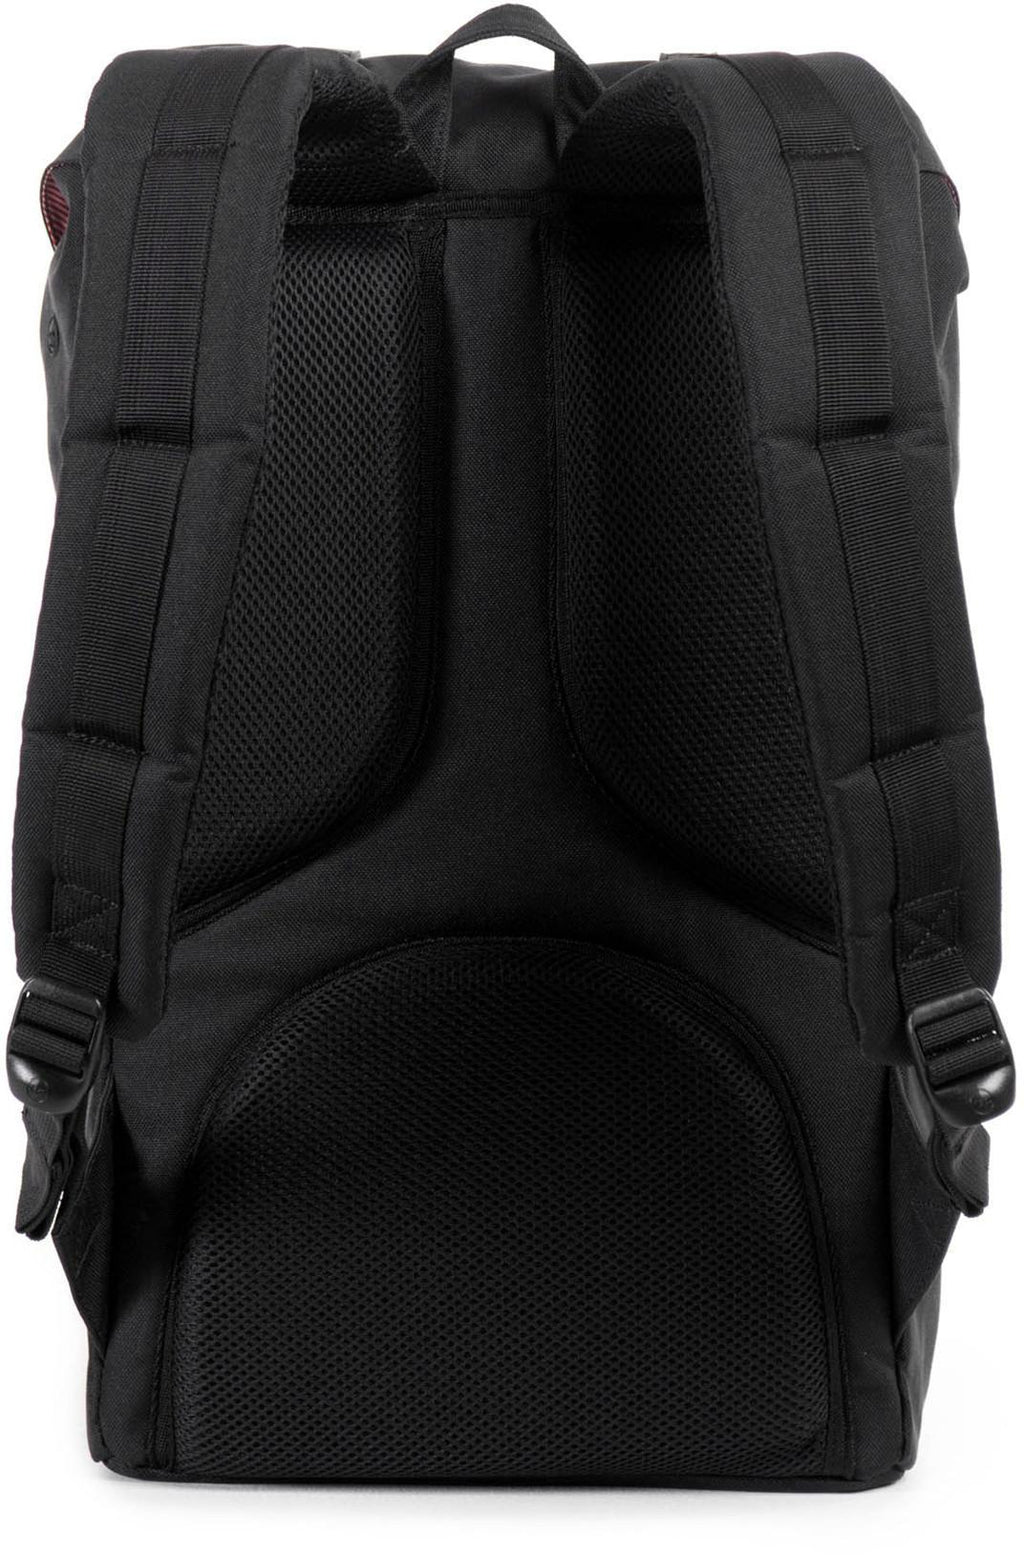 Herschel Supply Co Little America Backpack Bag Black